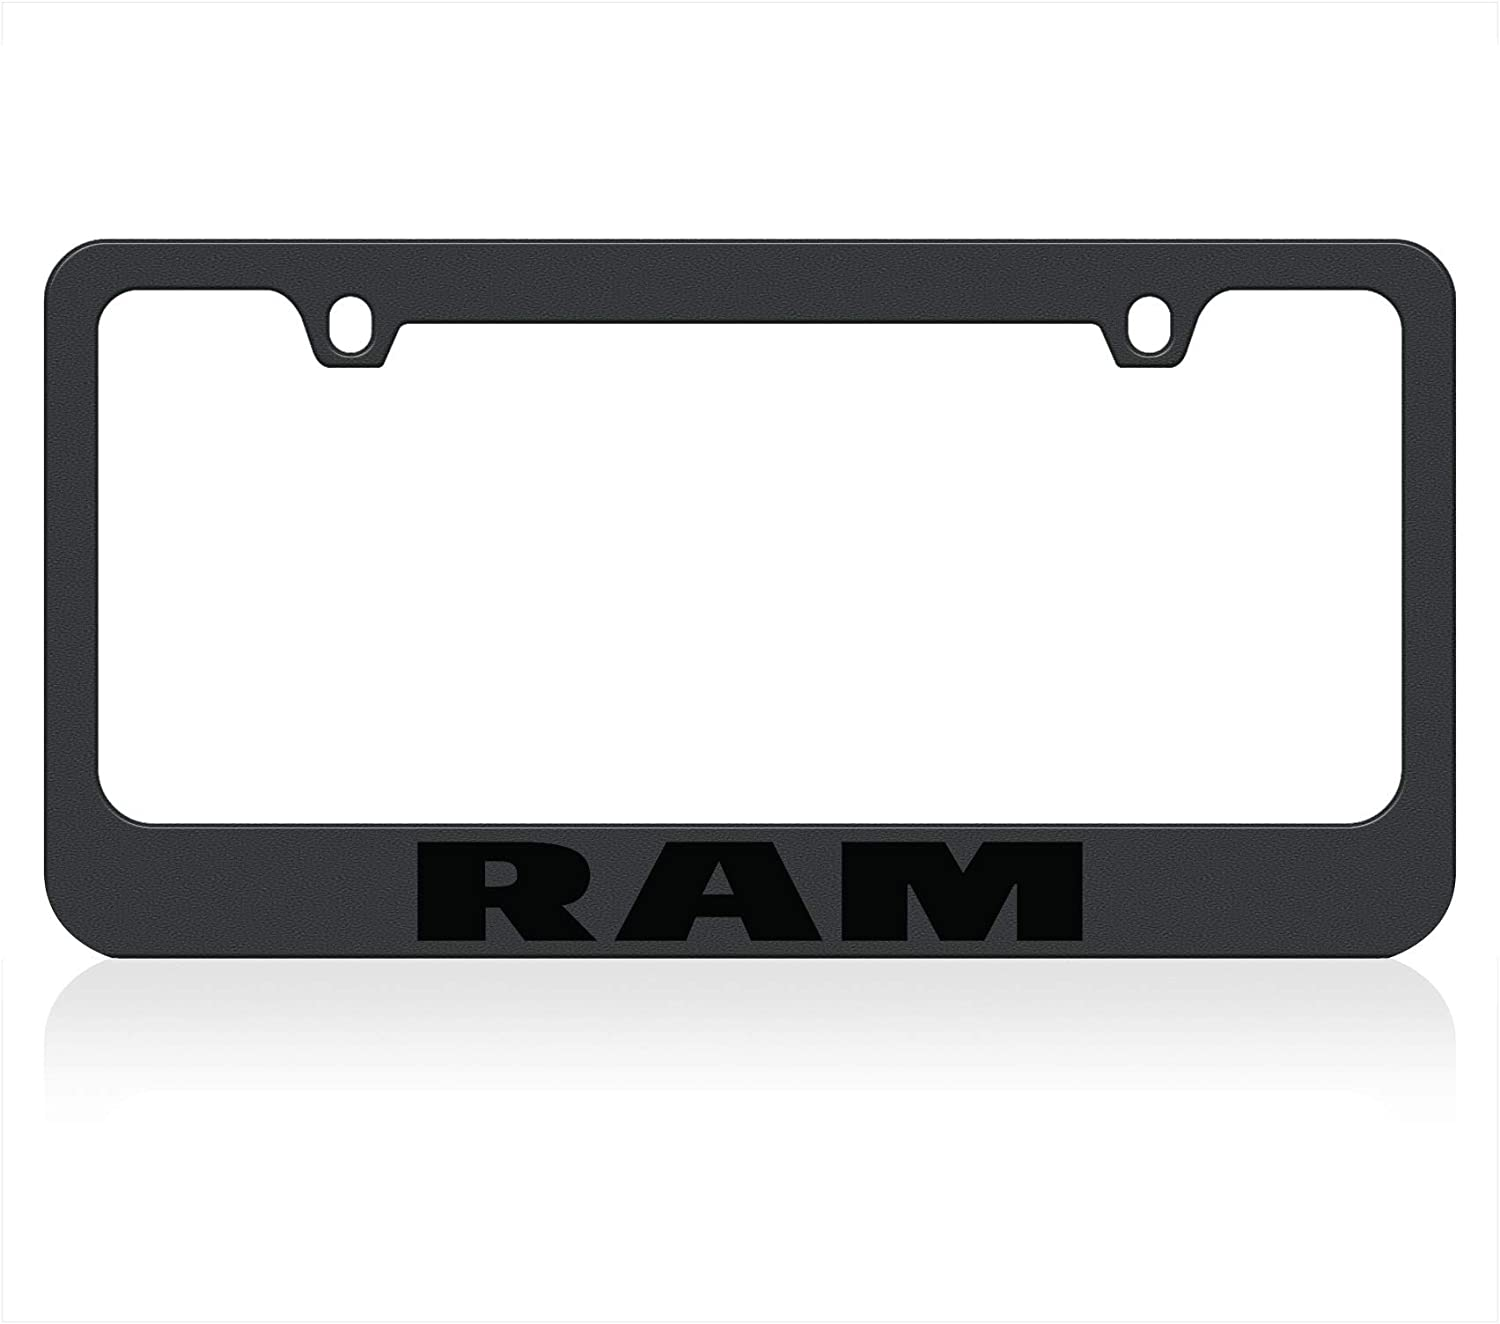 Eurosport Daytona Compatible with Dodge RAM Word Black License Plate Frame